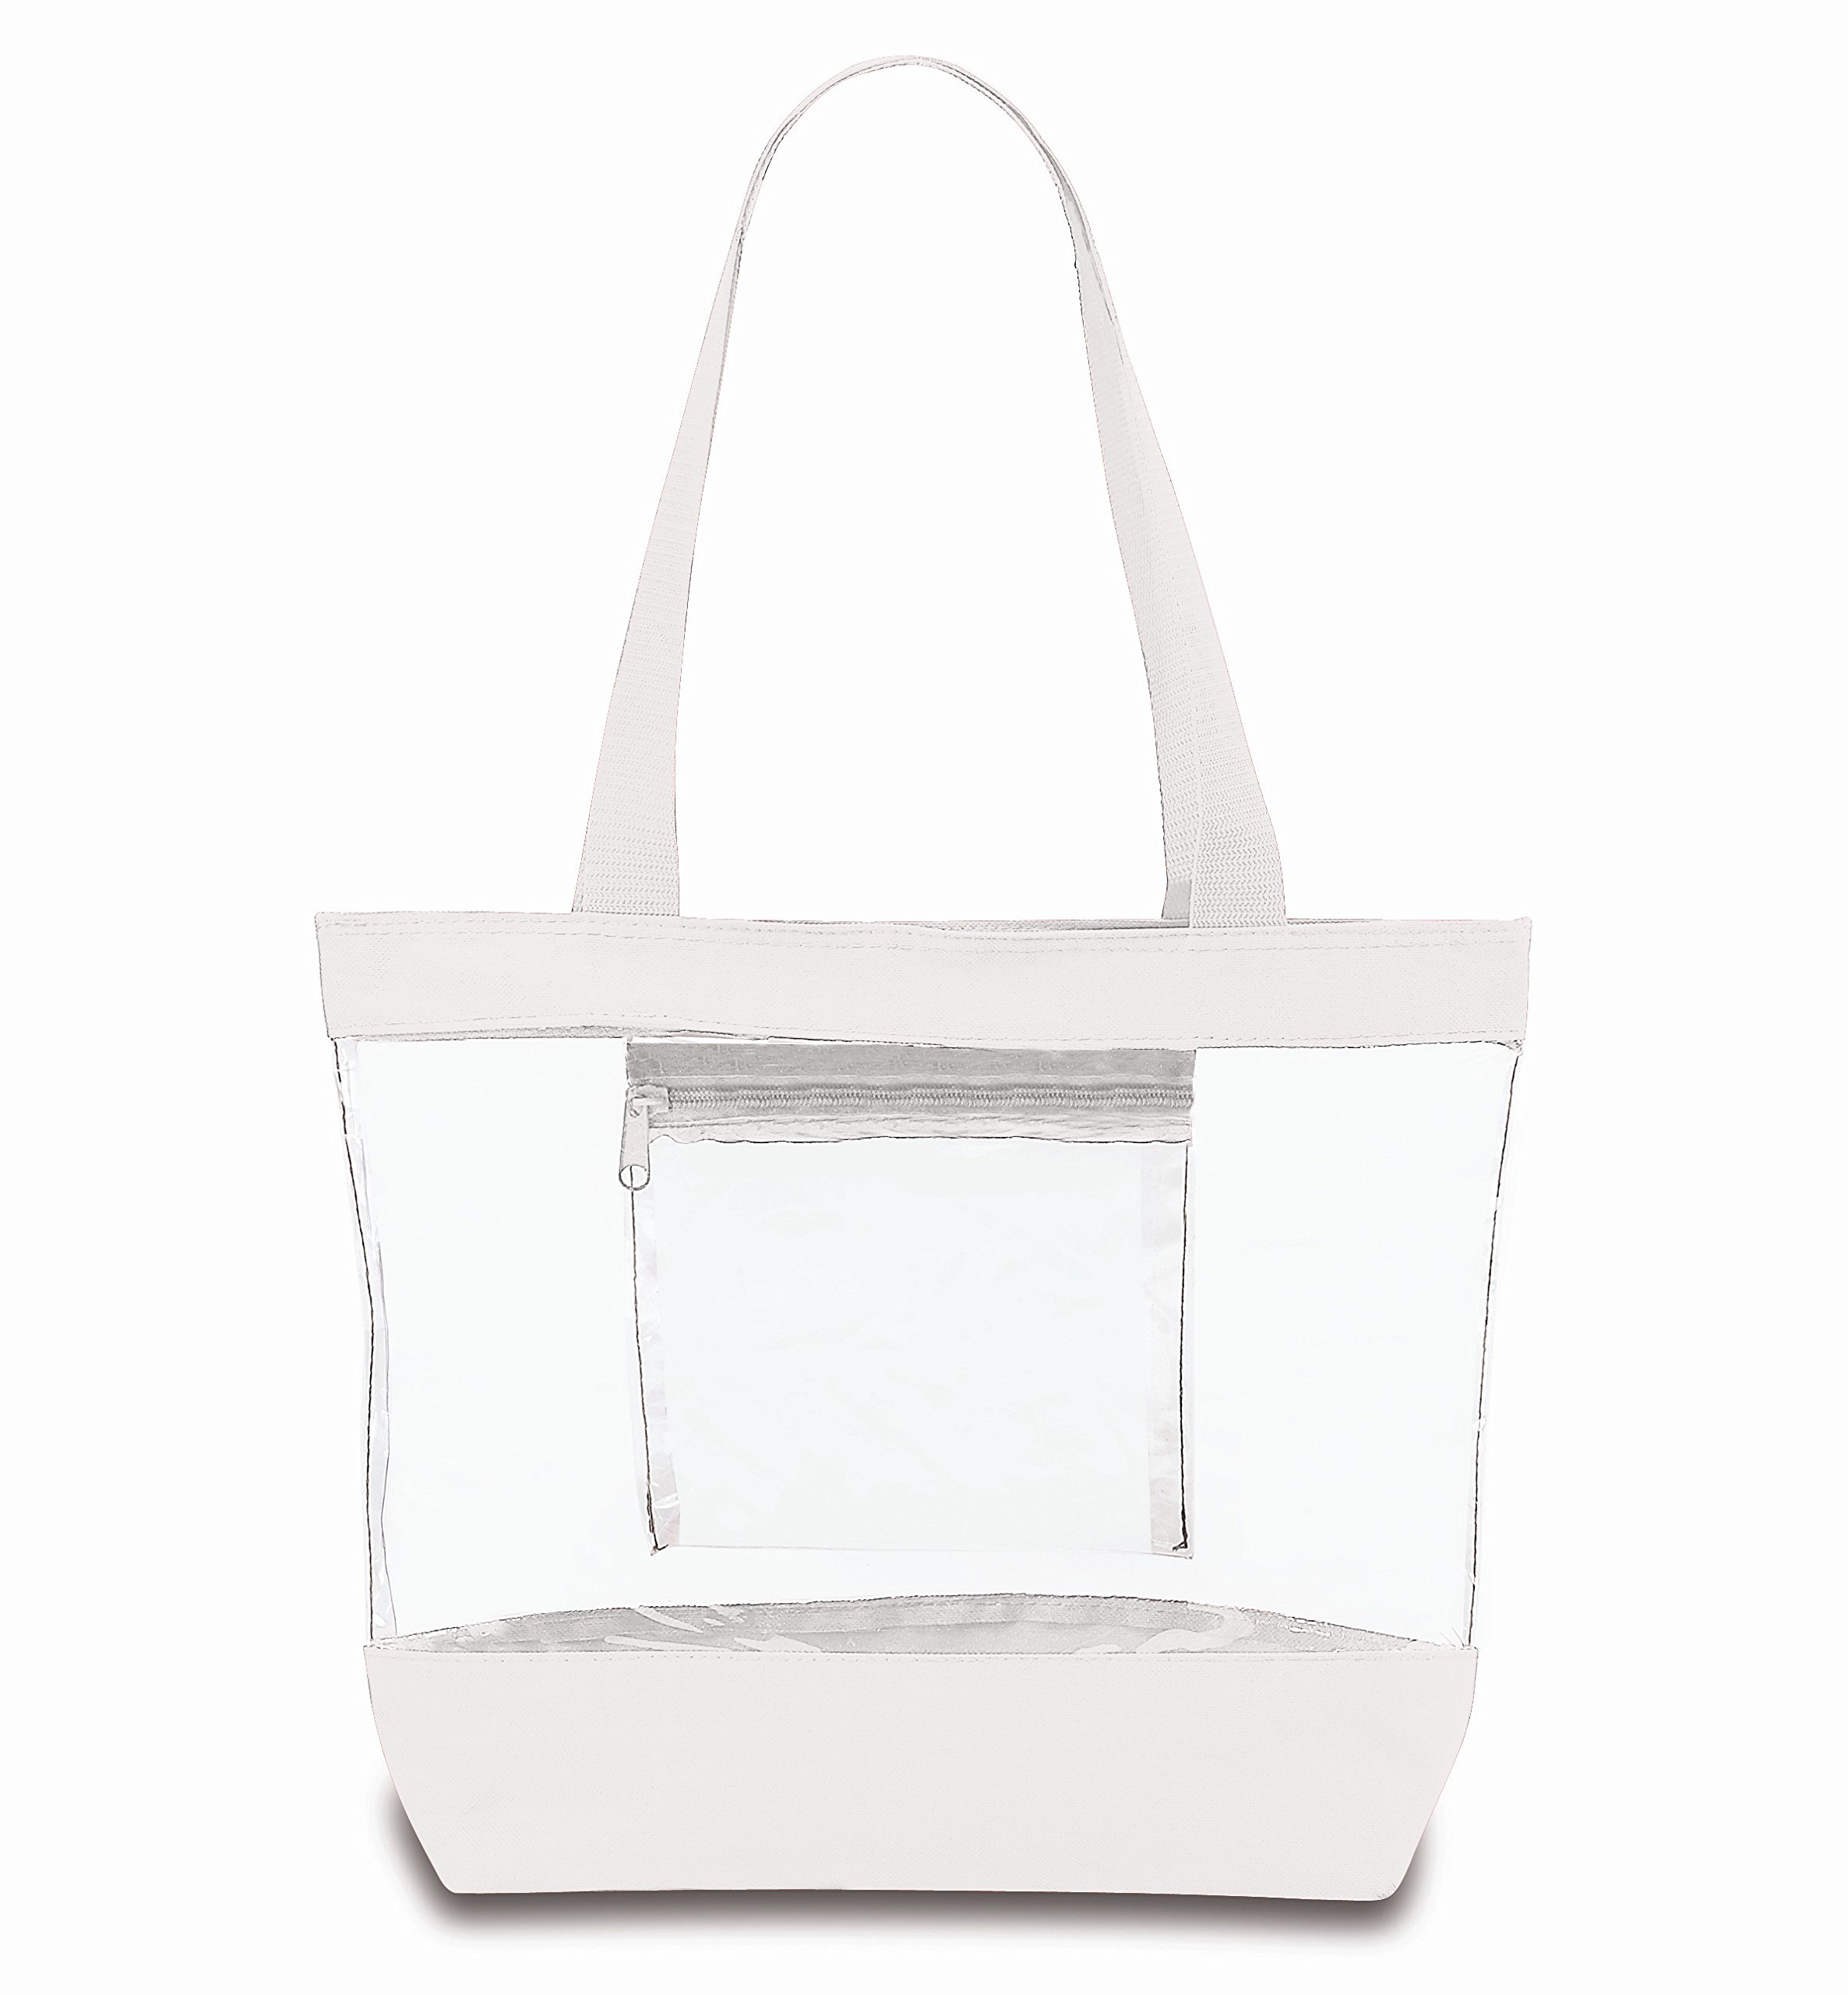 Medium Clear Tote Bag with Interior Pocket and Zipper Closure (White)